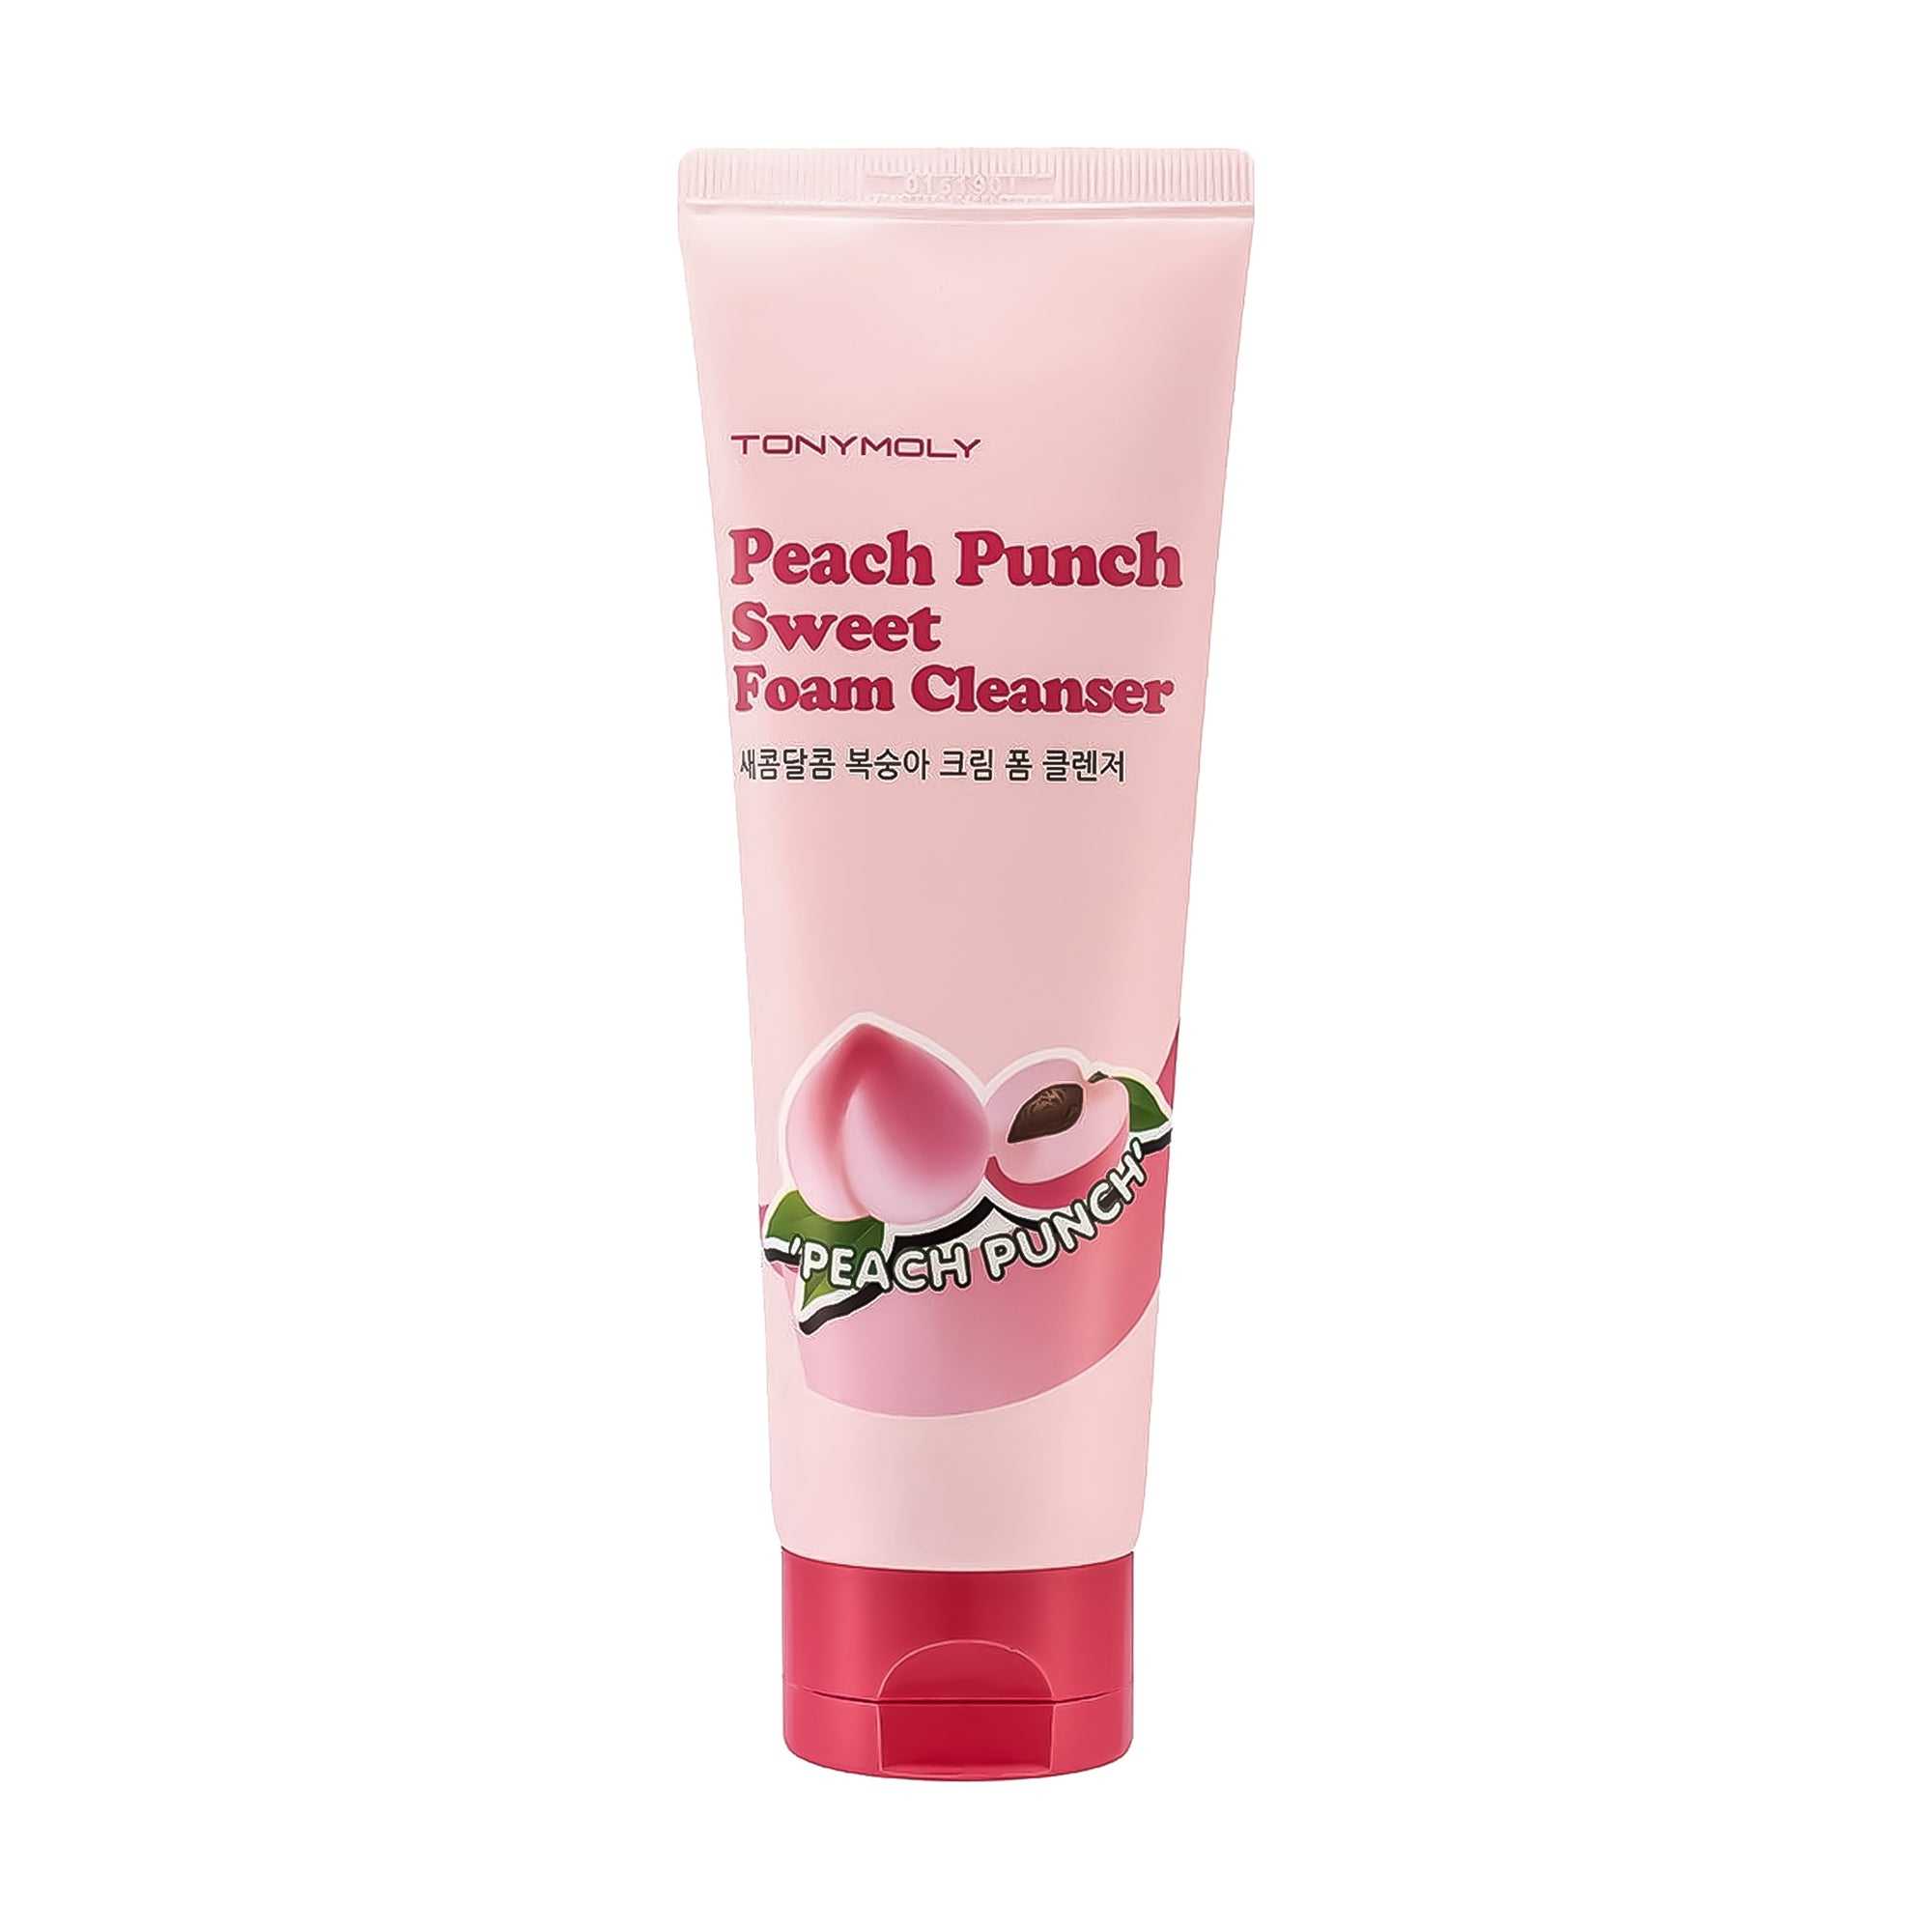 TONYMOLY Peach Punch Sweet Foam Cleanser 150 ml | Korean Skin Care